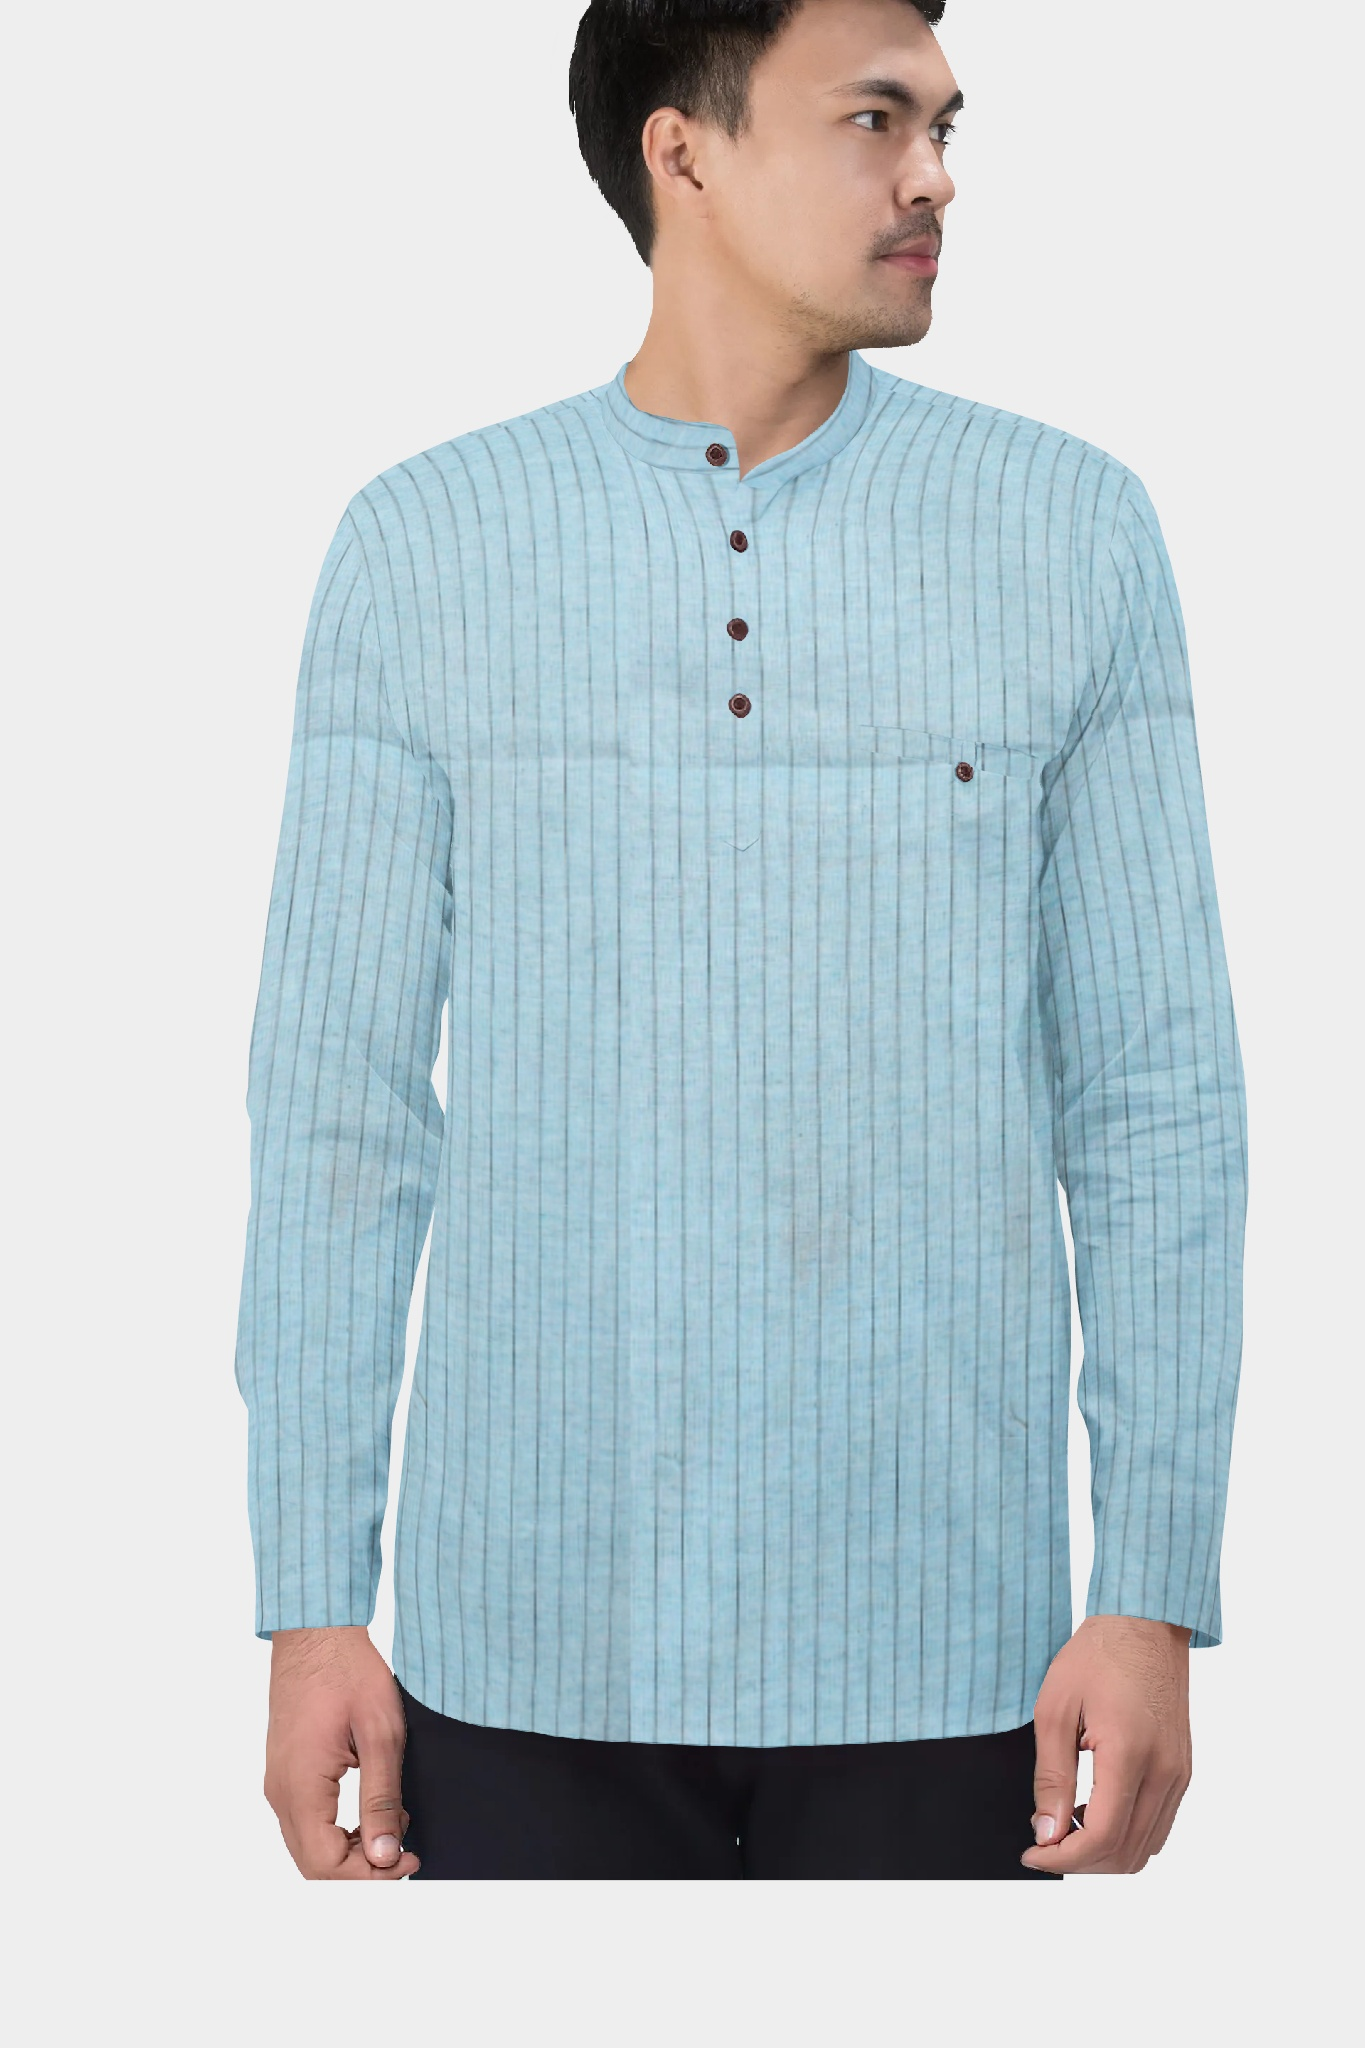 /home/customer/www/fabartcraft.com/public_html/uploadshttps://www.shopolics.com/uploads/images/medium/Cyan-Blue-Cotton-Short-Kurta-35434.jpg